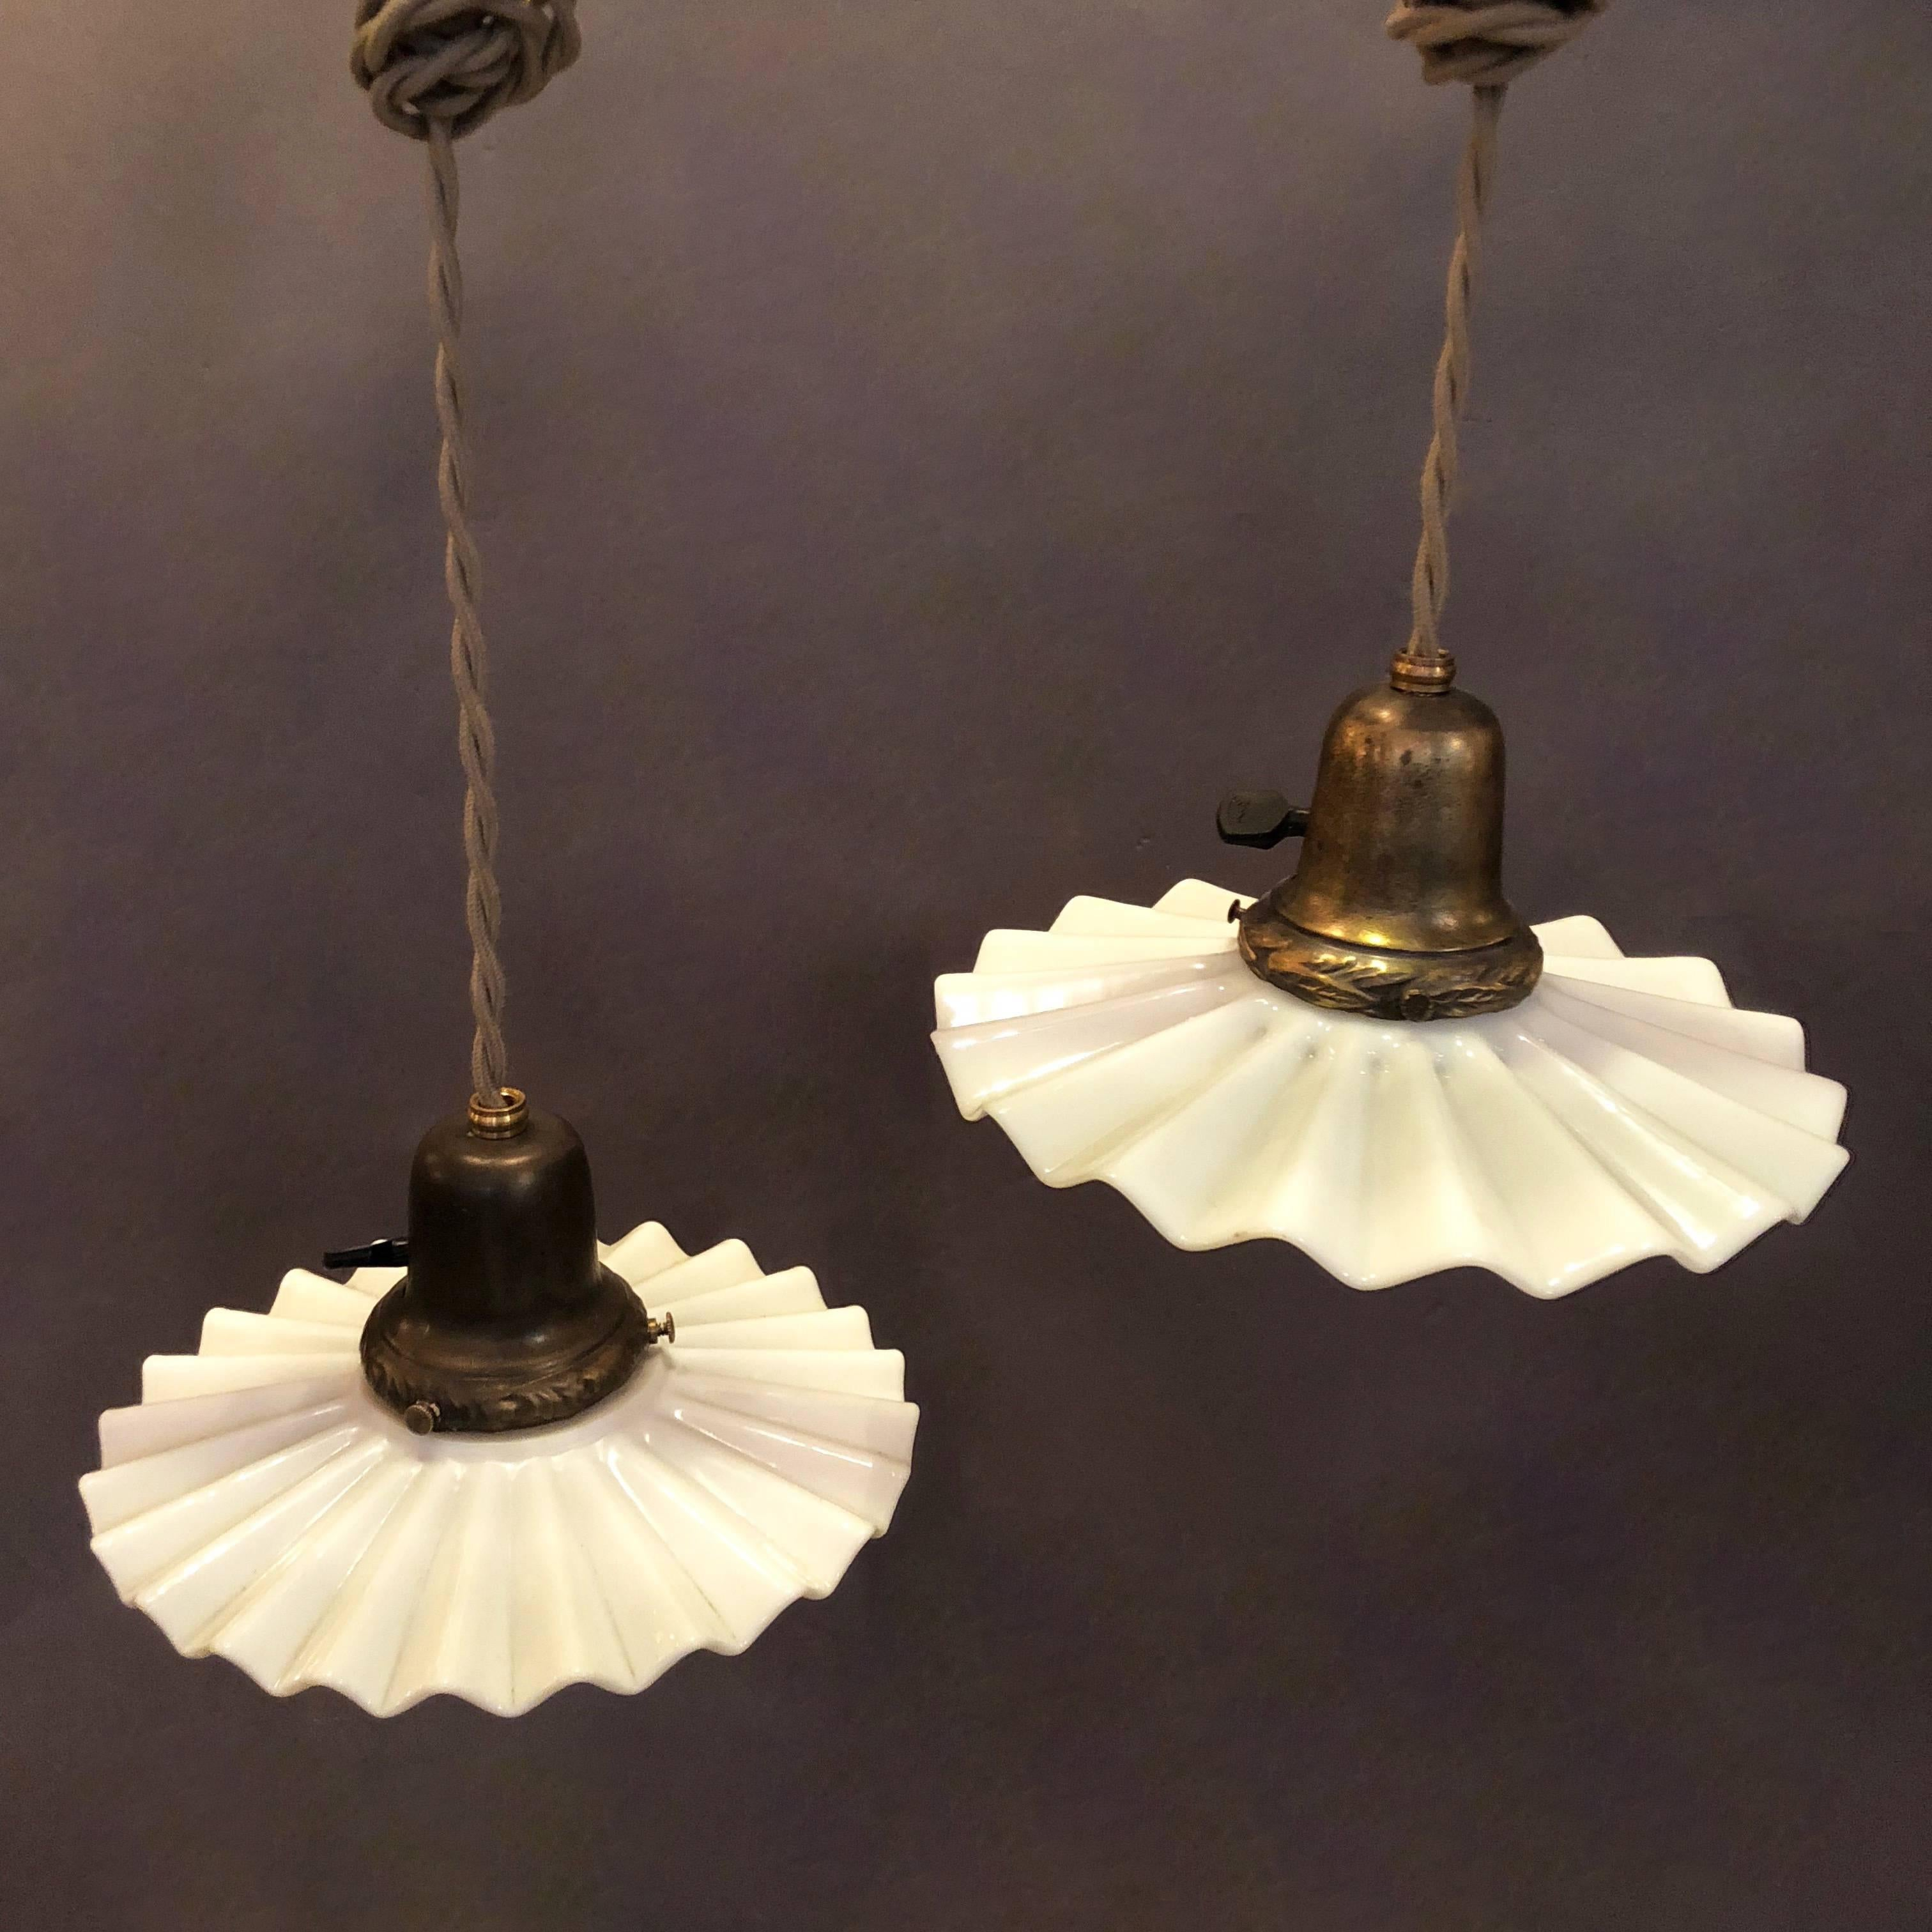 mezzega chairish brass glass chandeliers murano white milk vintage and chandelier spiral collection torciglione used tiered